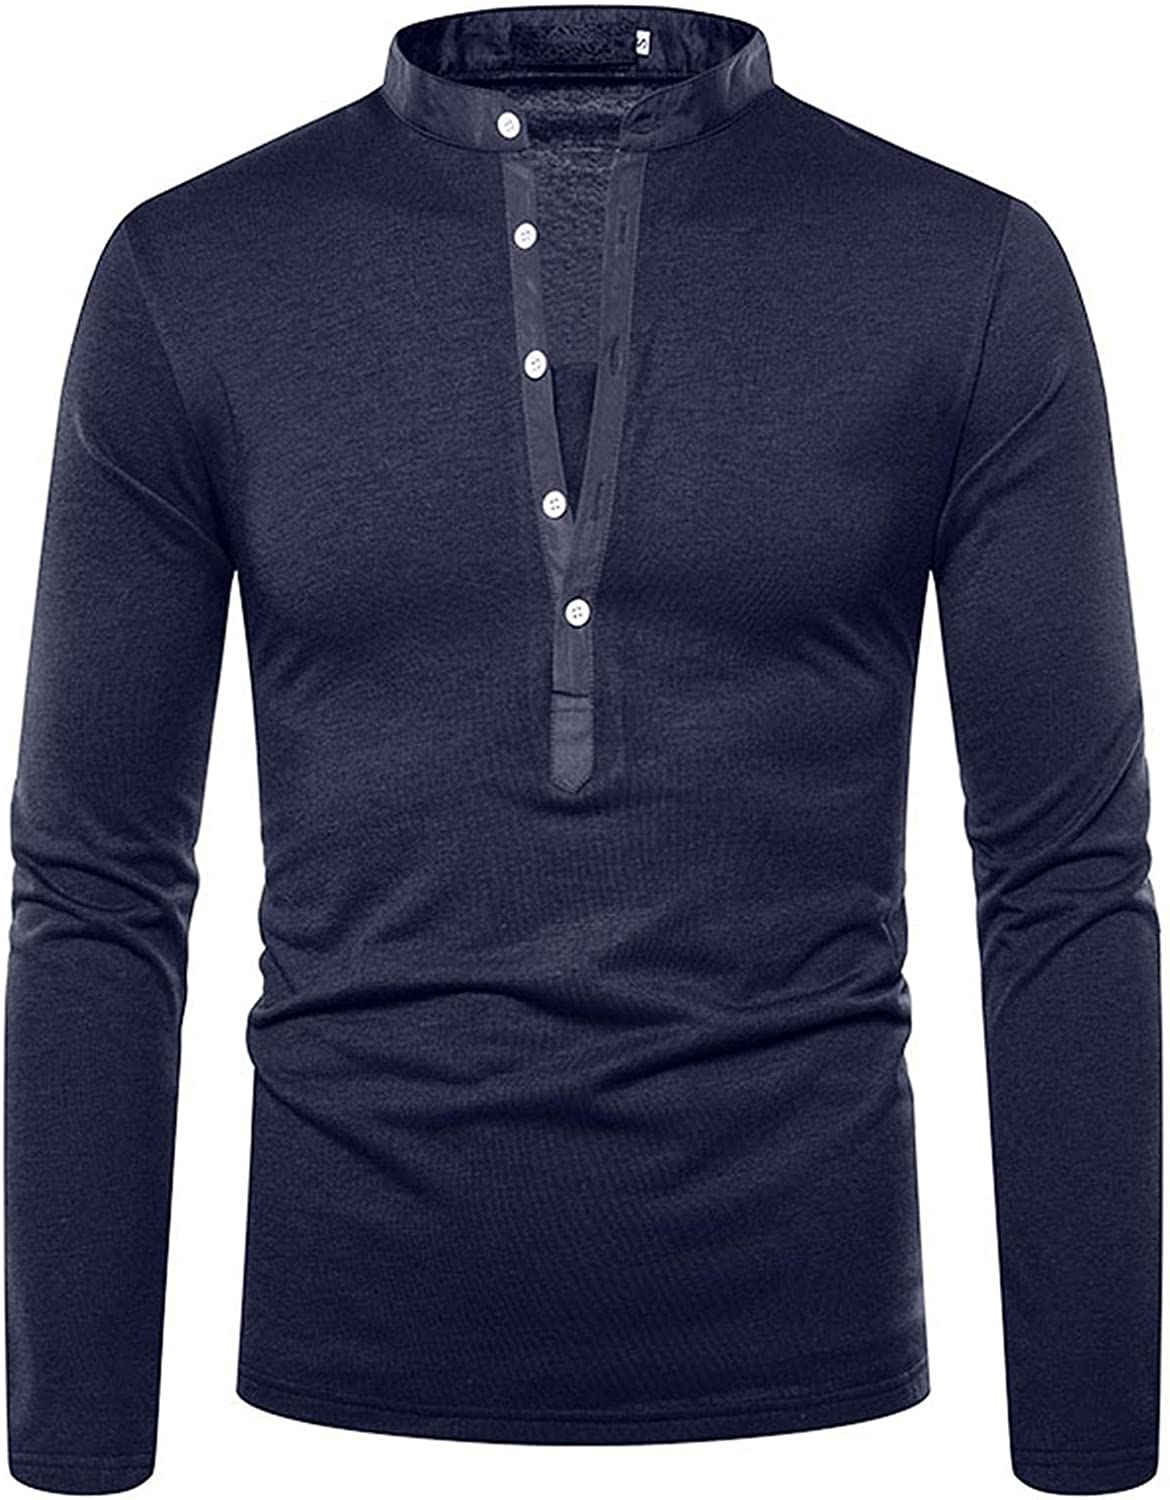 WUAI-Men Casual Slim Fit Henley Shirts Long Sleeve Stretch Banded Collar Button Up Cotton Tee Workout Muscle Tops